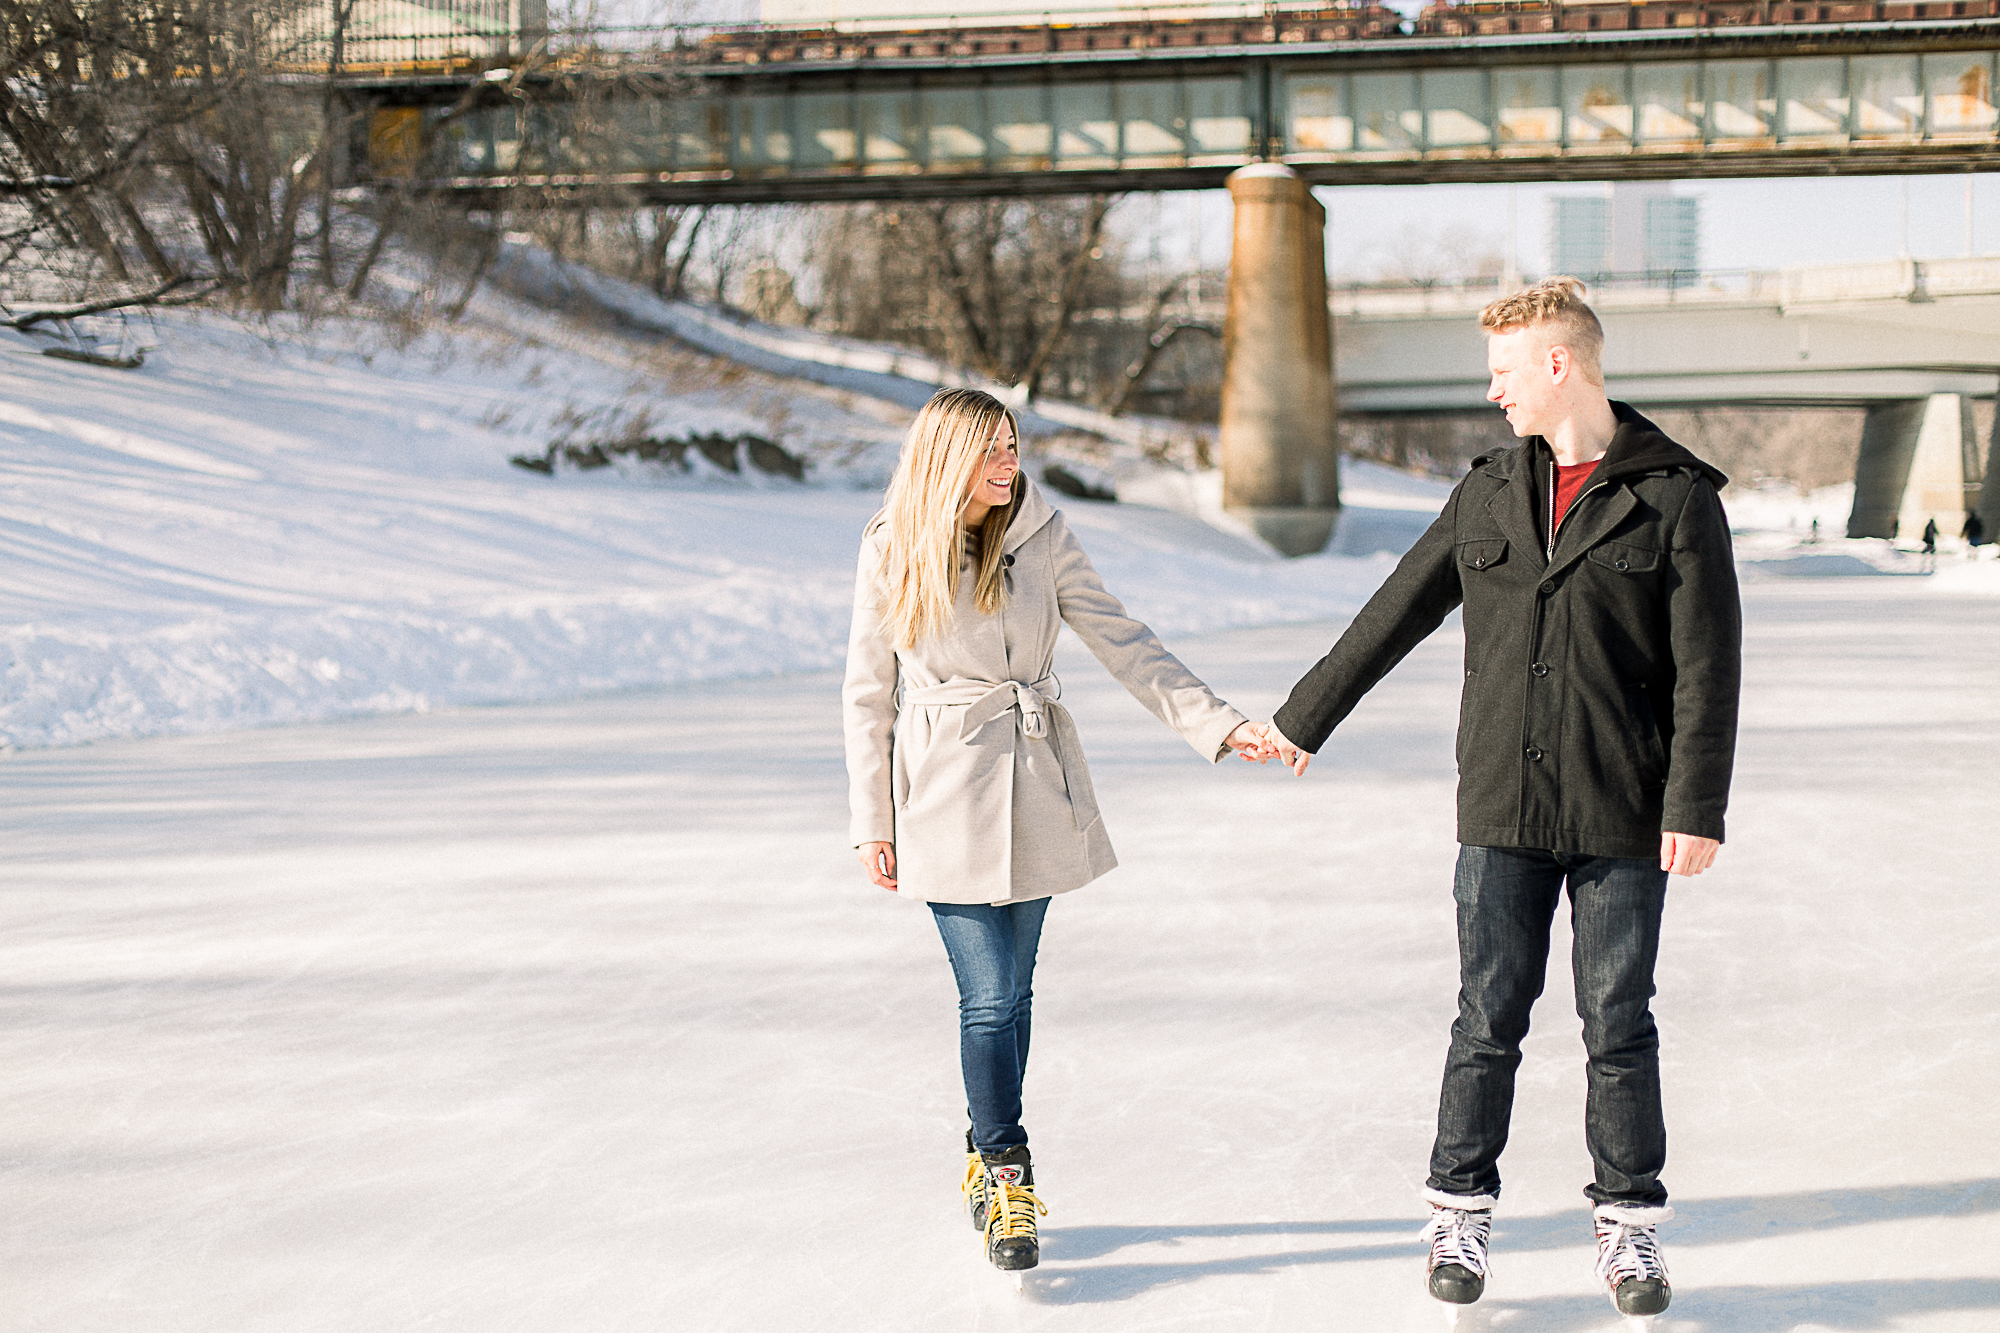 The-Forks-River-Trail-Skating-Engagement-Photoshoot-Keila-Marie-Photography-Winnipeg-Manitoba